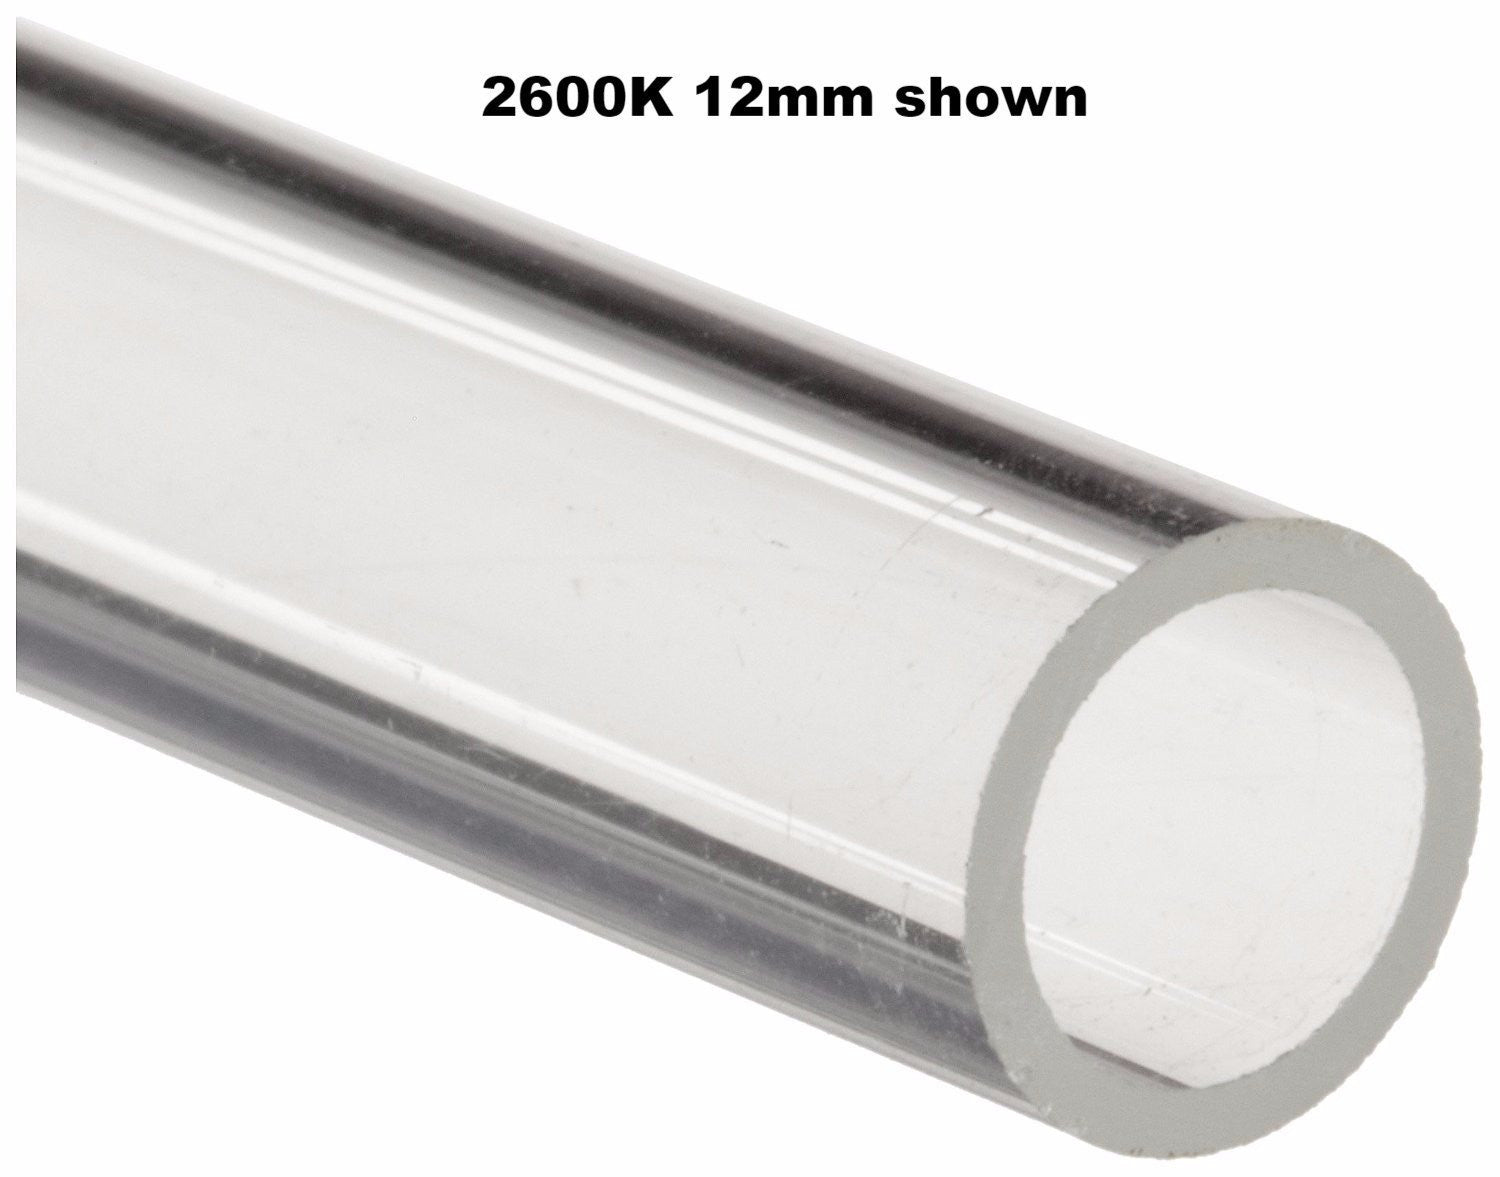 "6mm Soda Lime Glass Tubing 12""L - The Science Shop"